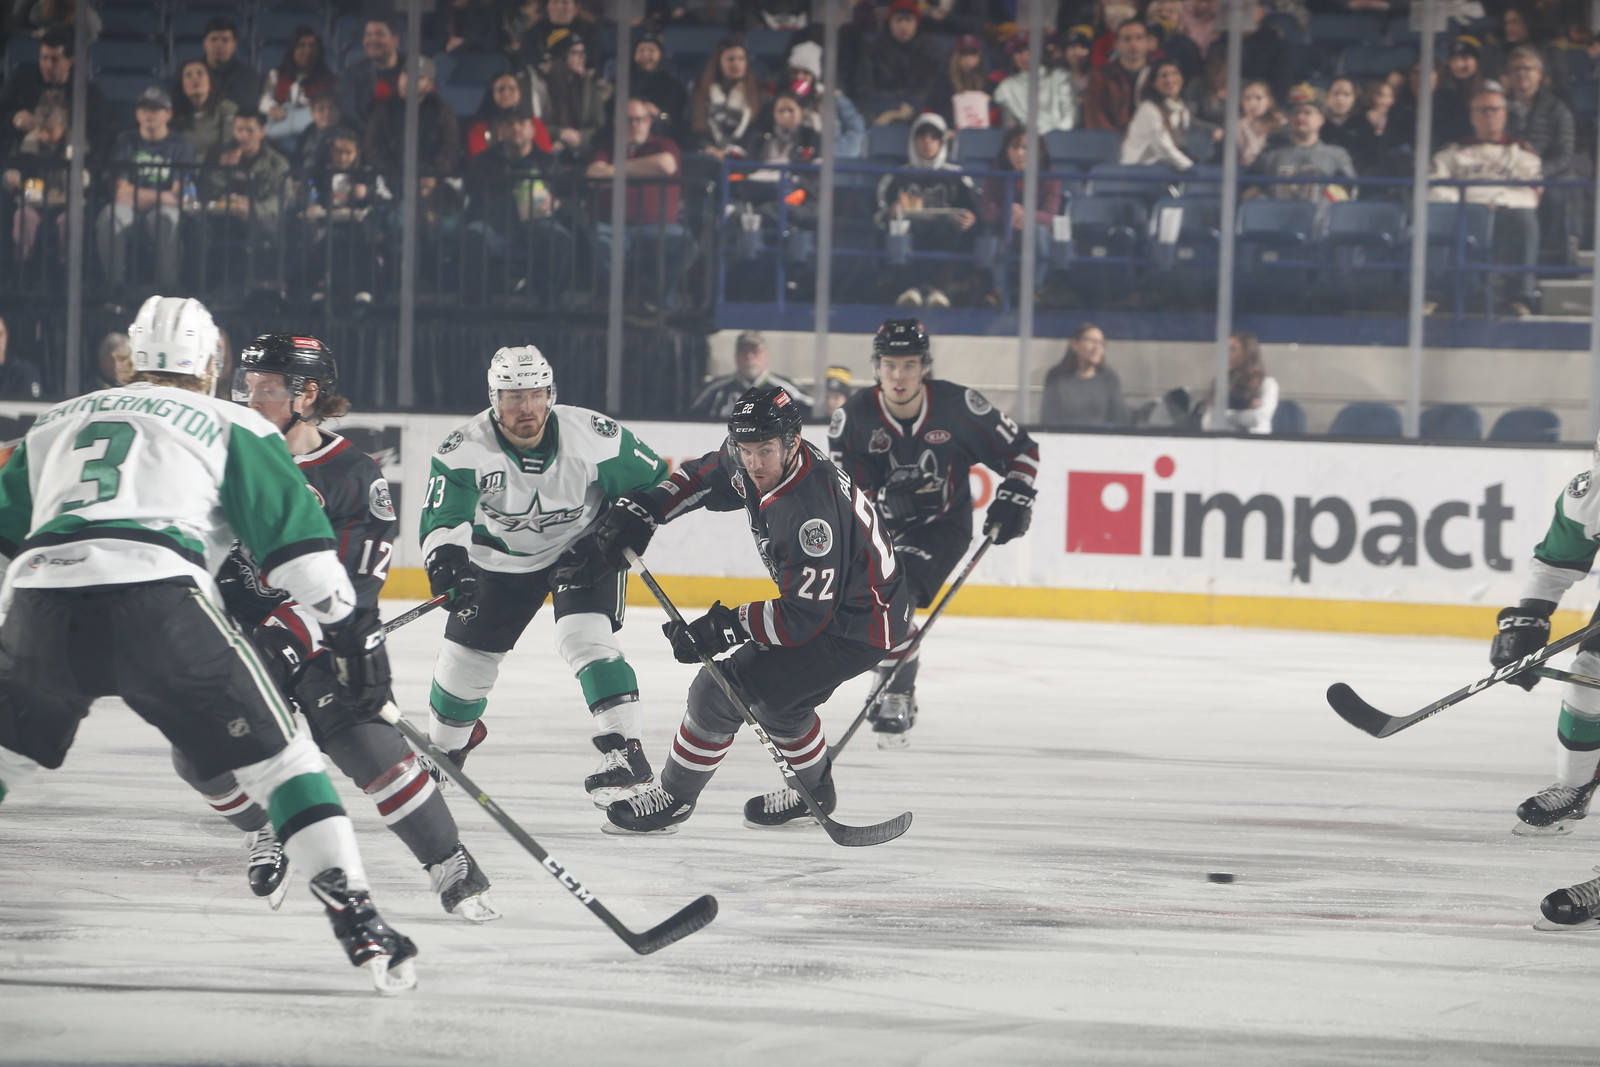 Feb. 24, 2019 vs. Texas Stars